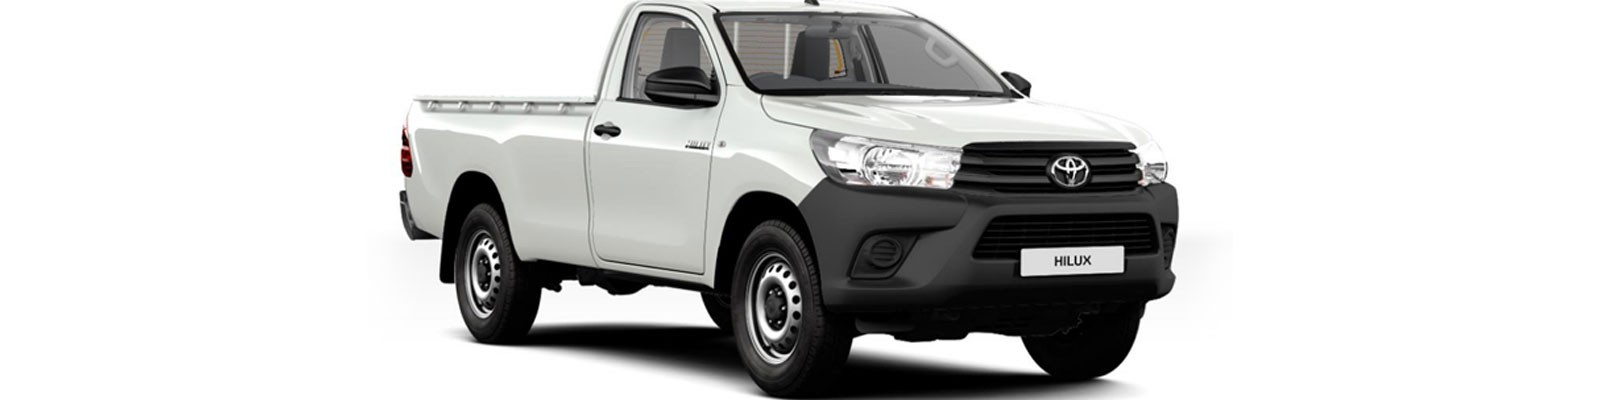 Toyota Hilux Single Cab Accessories 4x4 Accessories Amp Tyres